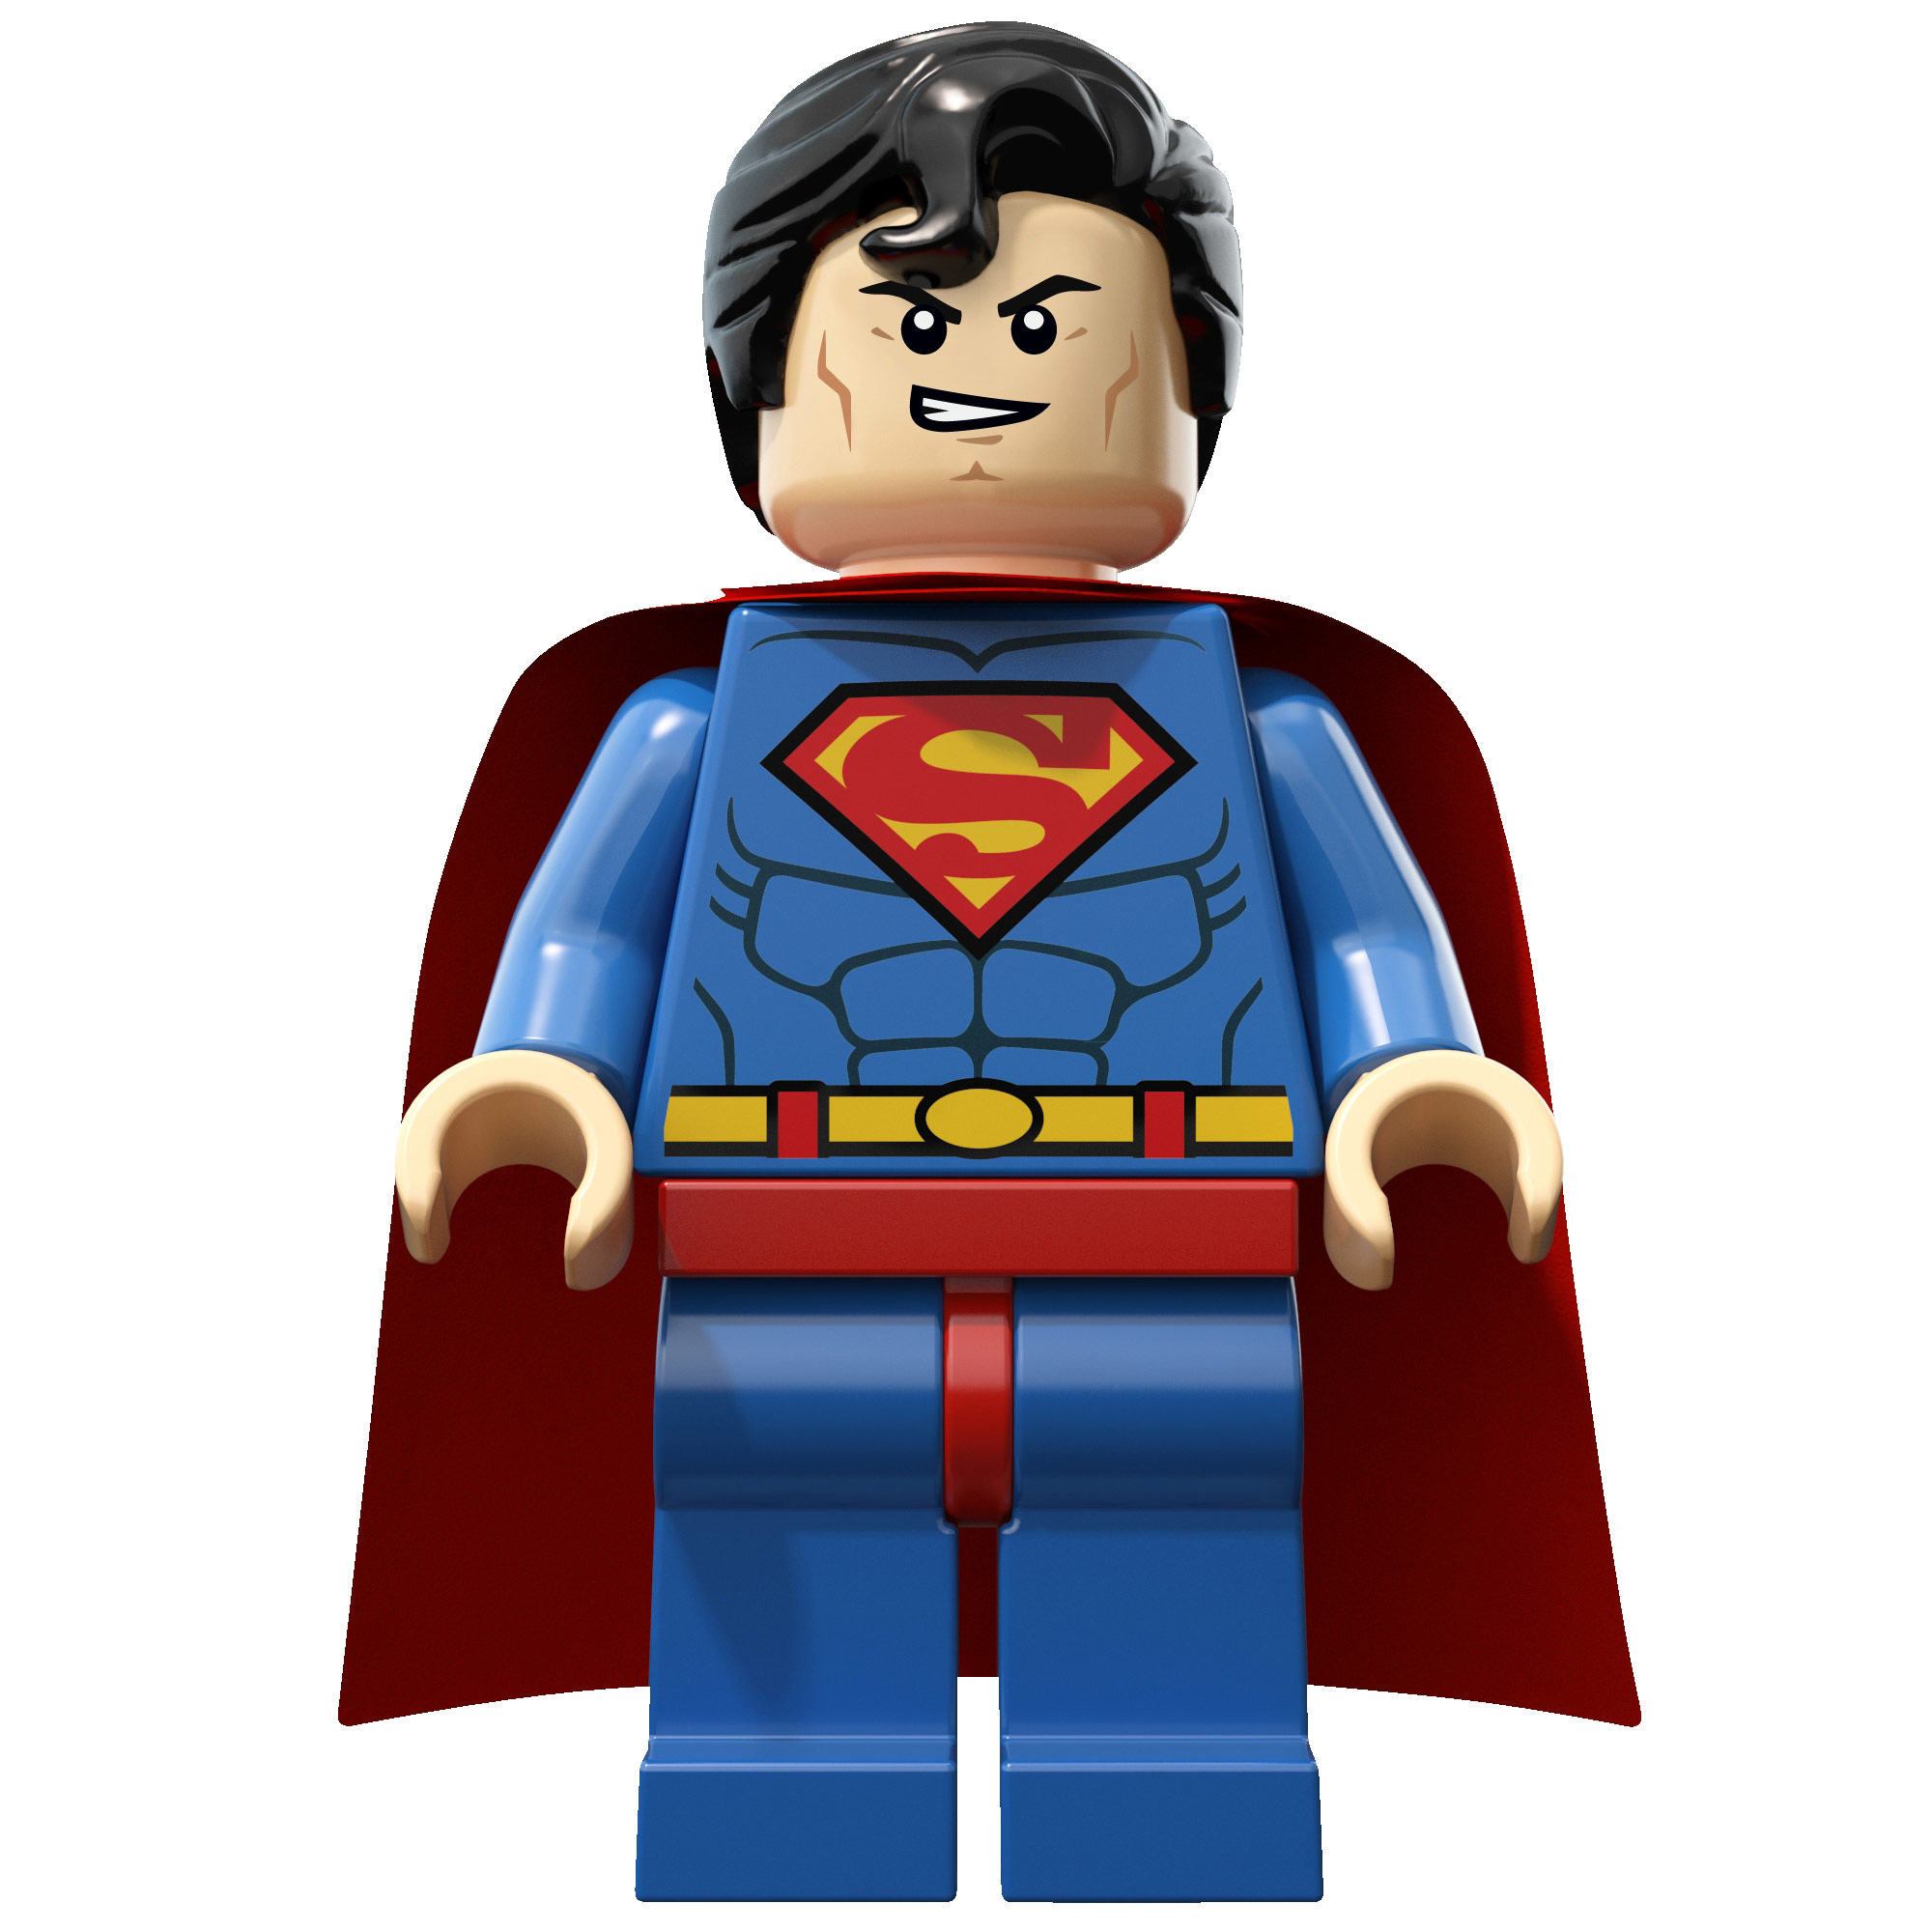 Superman Images Superman Lego Hd Wallpaper And Background Photos